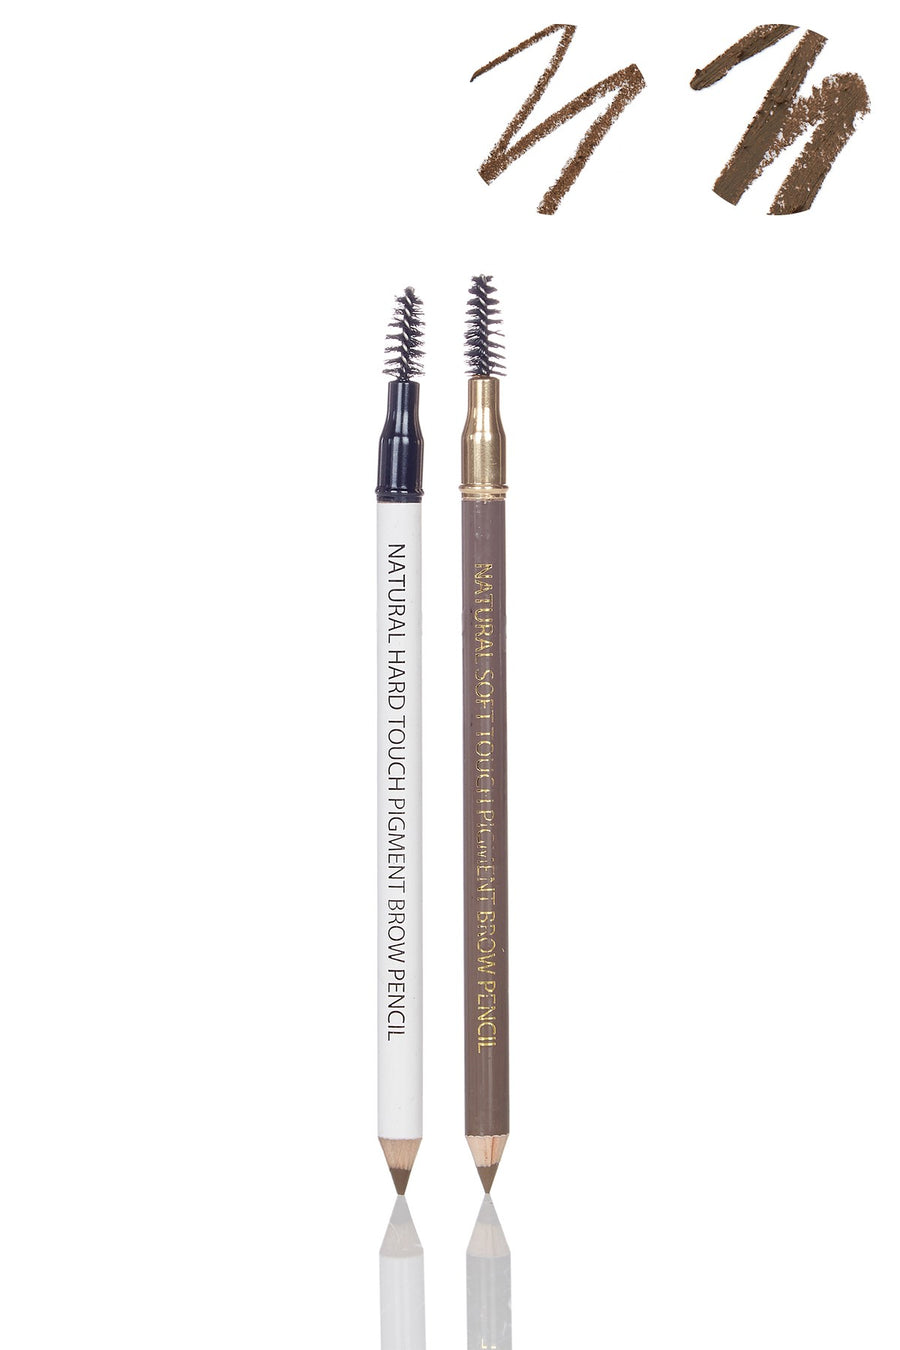 Universal Brow Definer - Set of Soft Touch & Hard Touch Universal Formula Professional Eyebrow Pencils - Blend Mineral Cosmetics